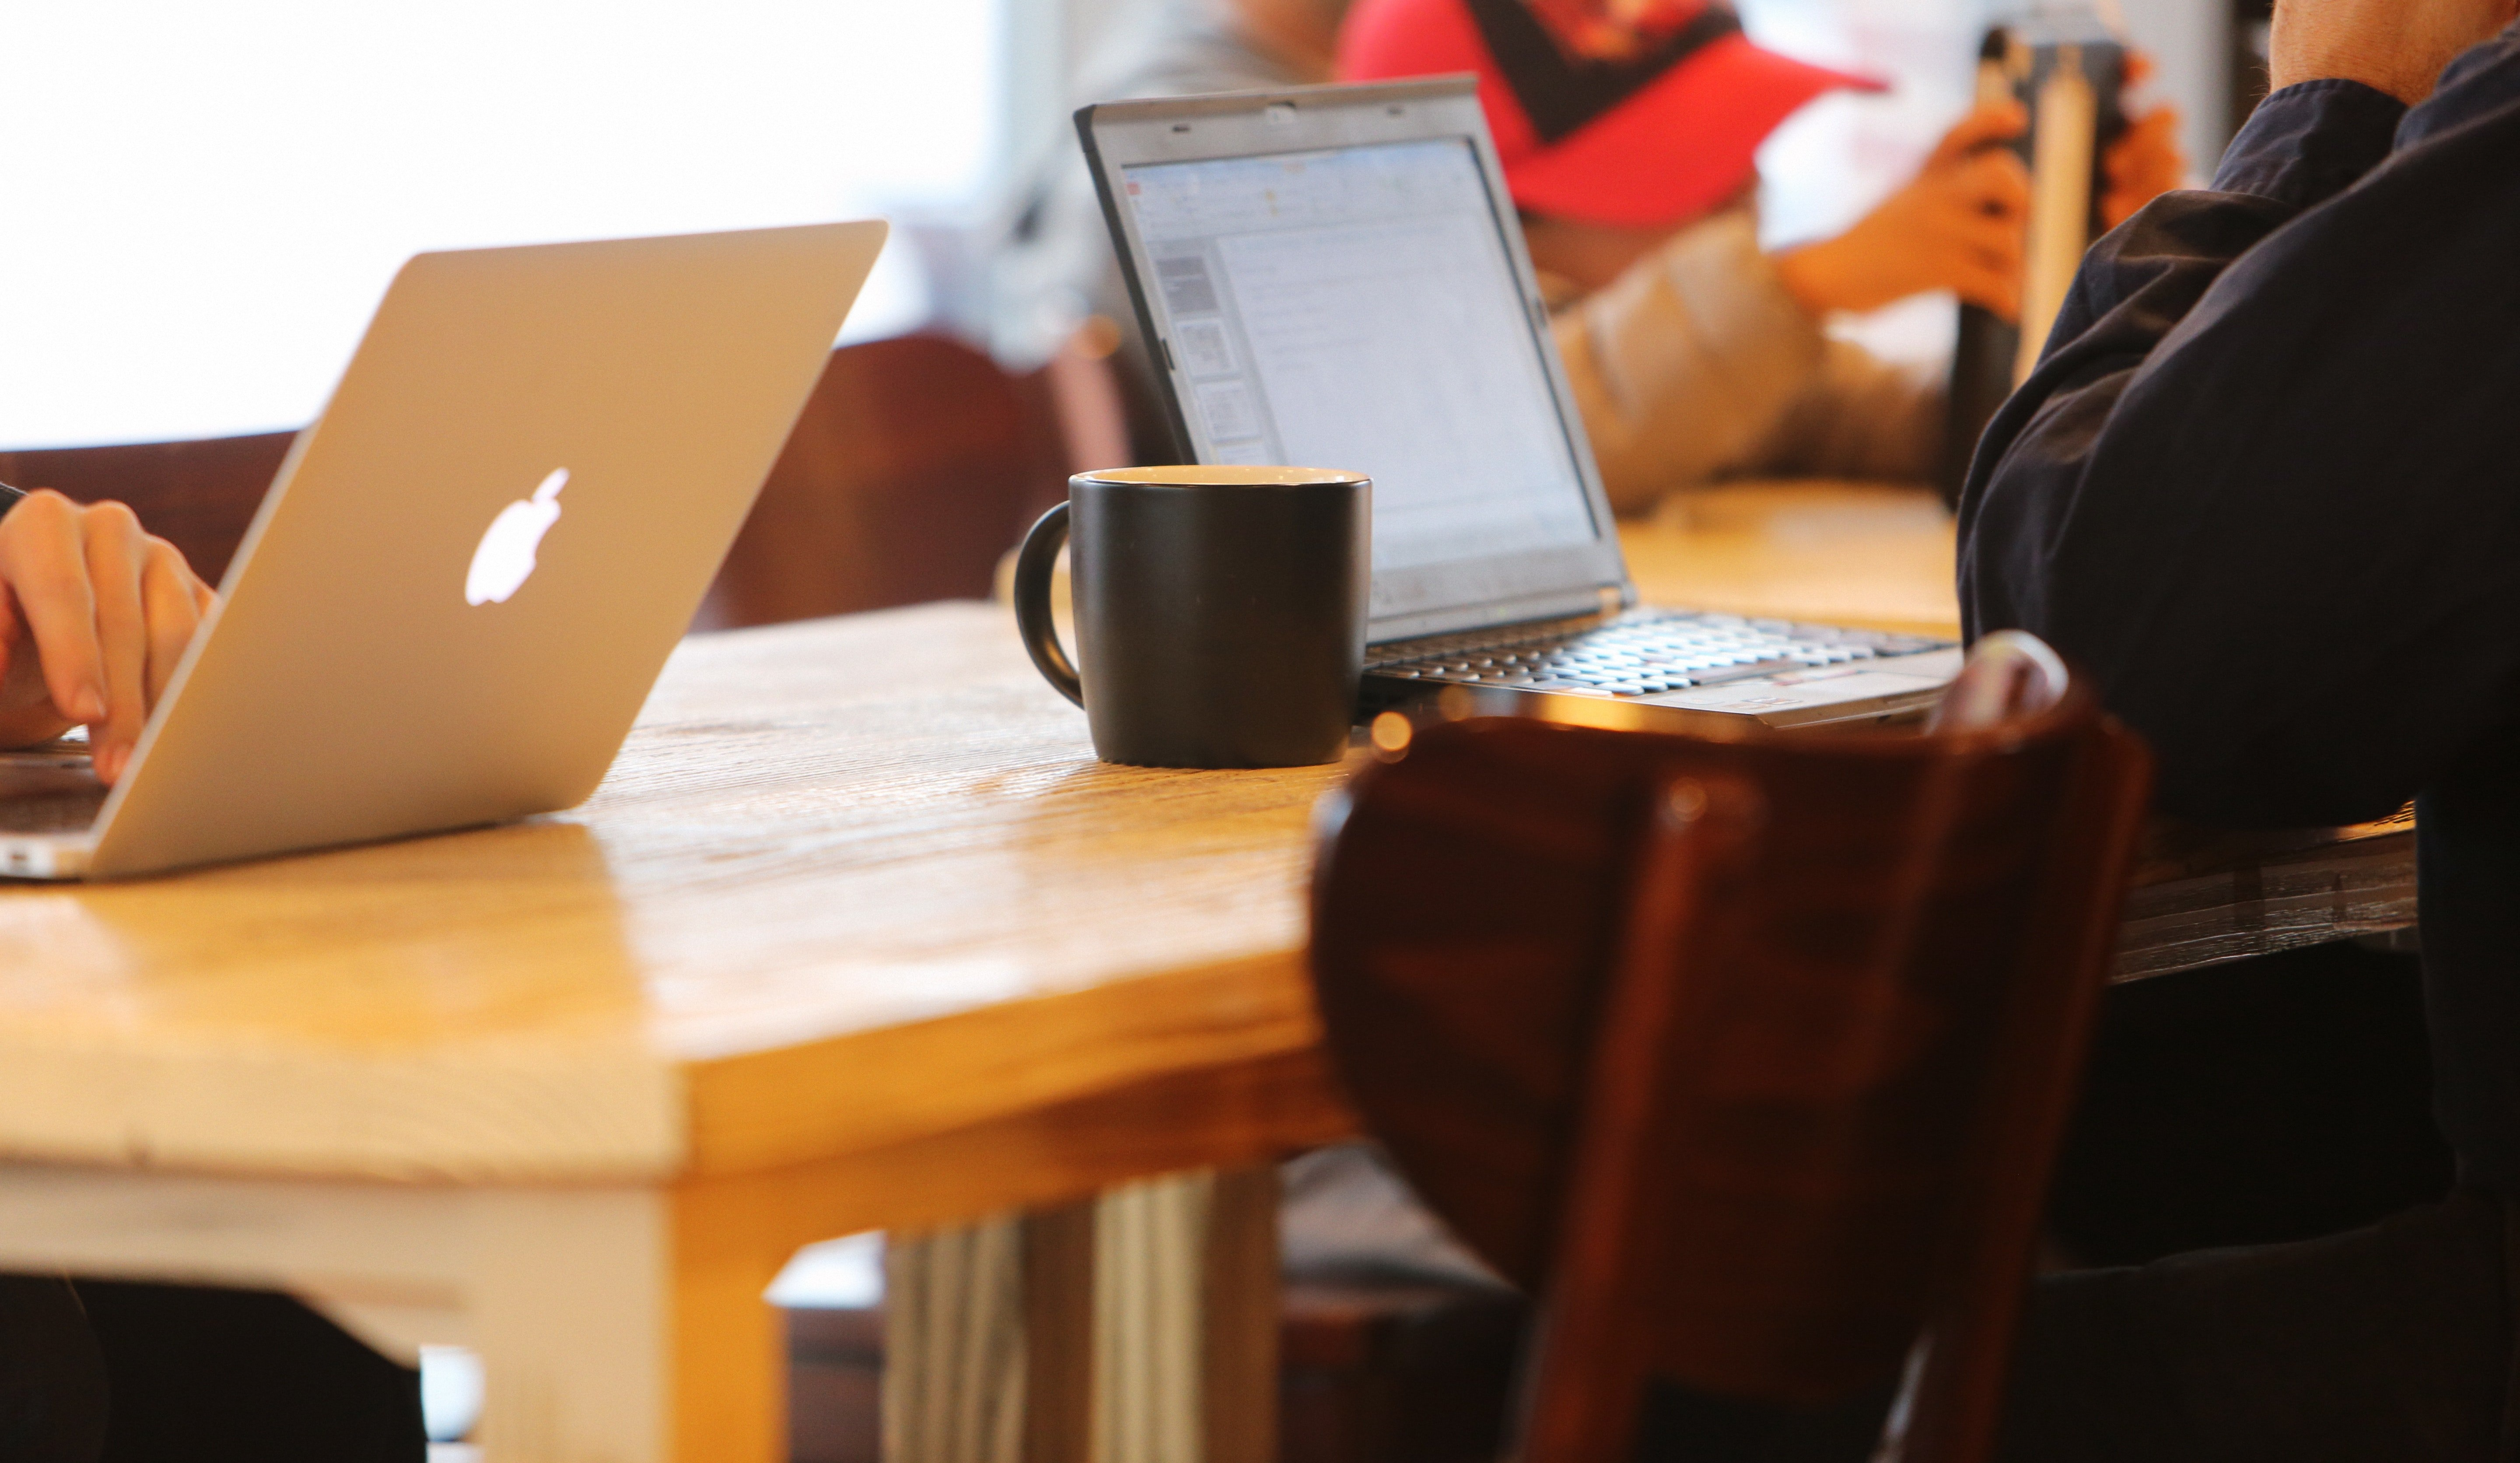 people-sitting-at-table-with-laptops-and-coffee-004207-edited